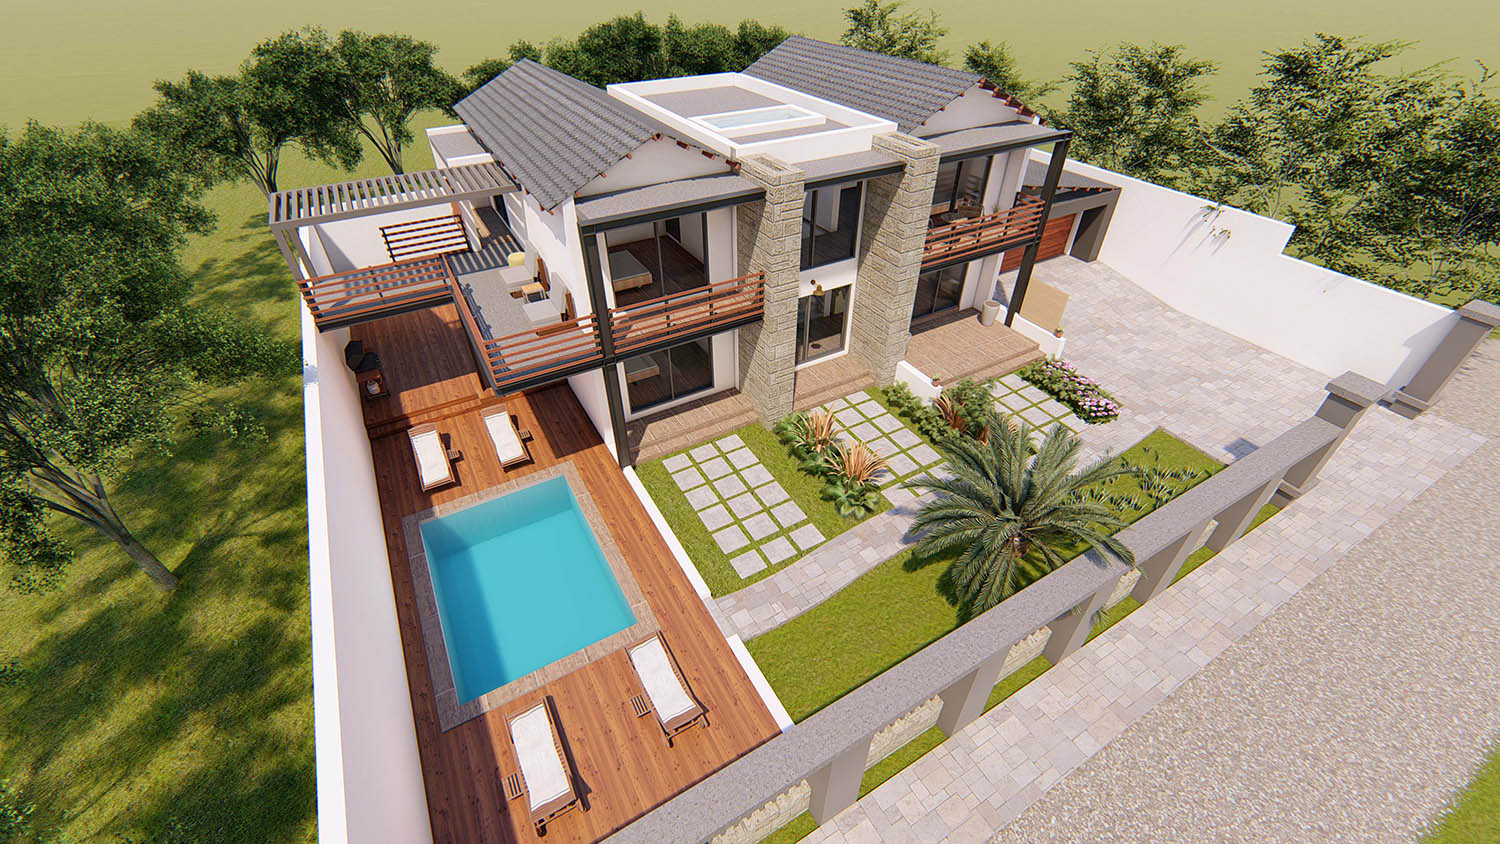 House Plans_Renovations and Alterations Montana 4